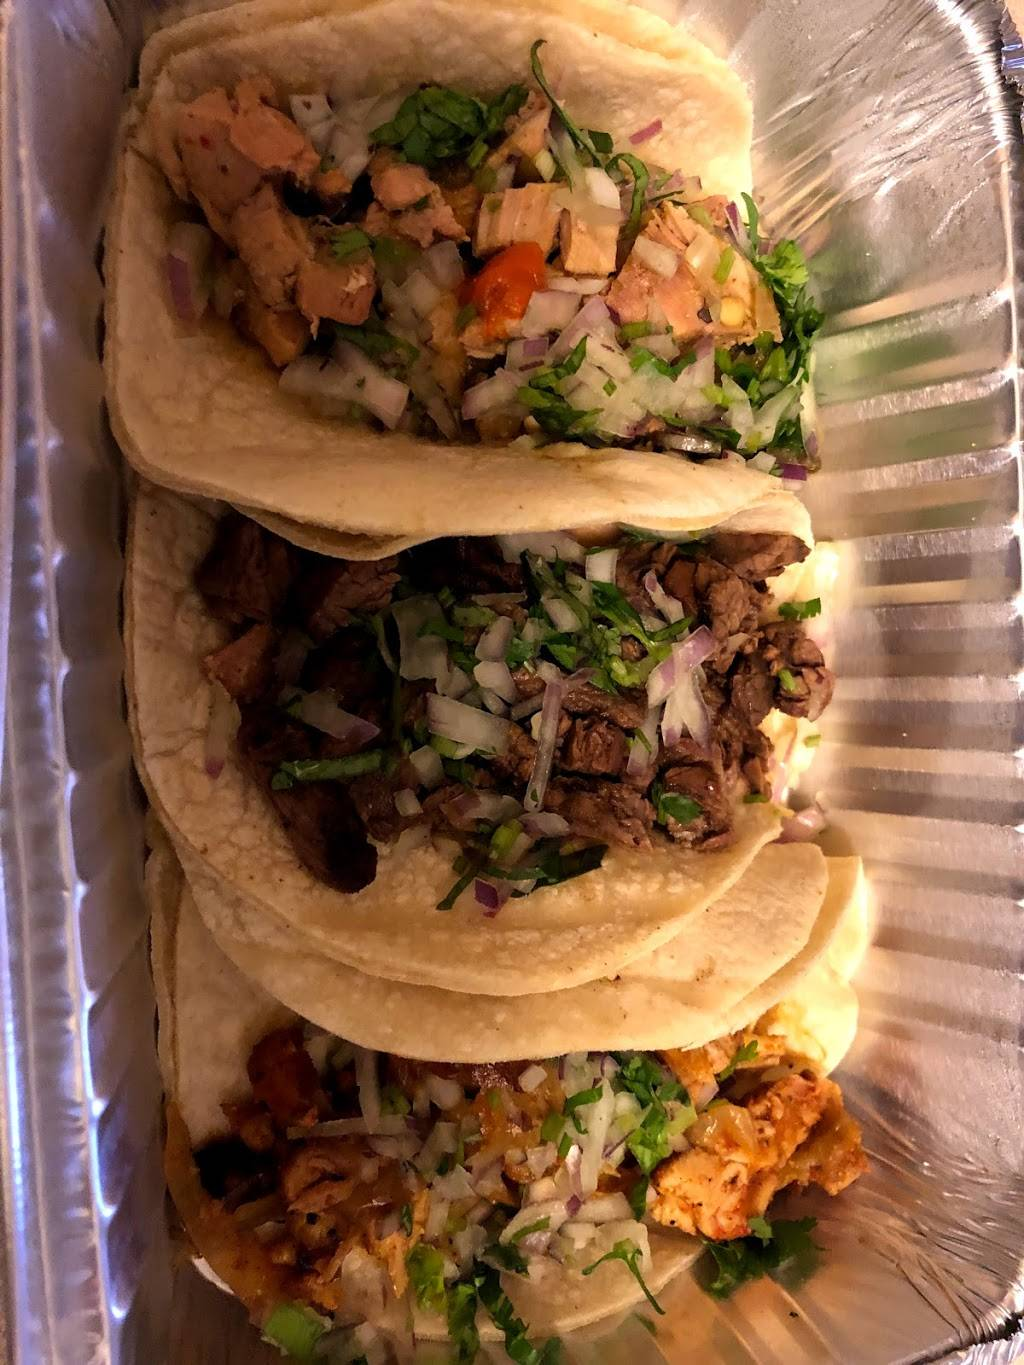 Maya Taqueria | restaurant | 637 Vanderbilt Ave, Brooklyn, NY 11238, USA | 7186386292 OR +1 718-638-6292